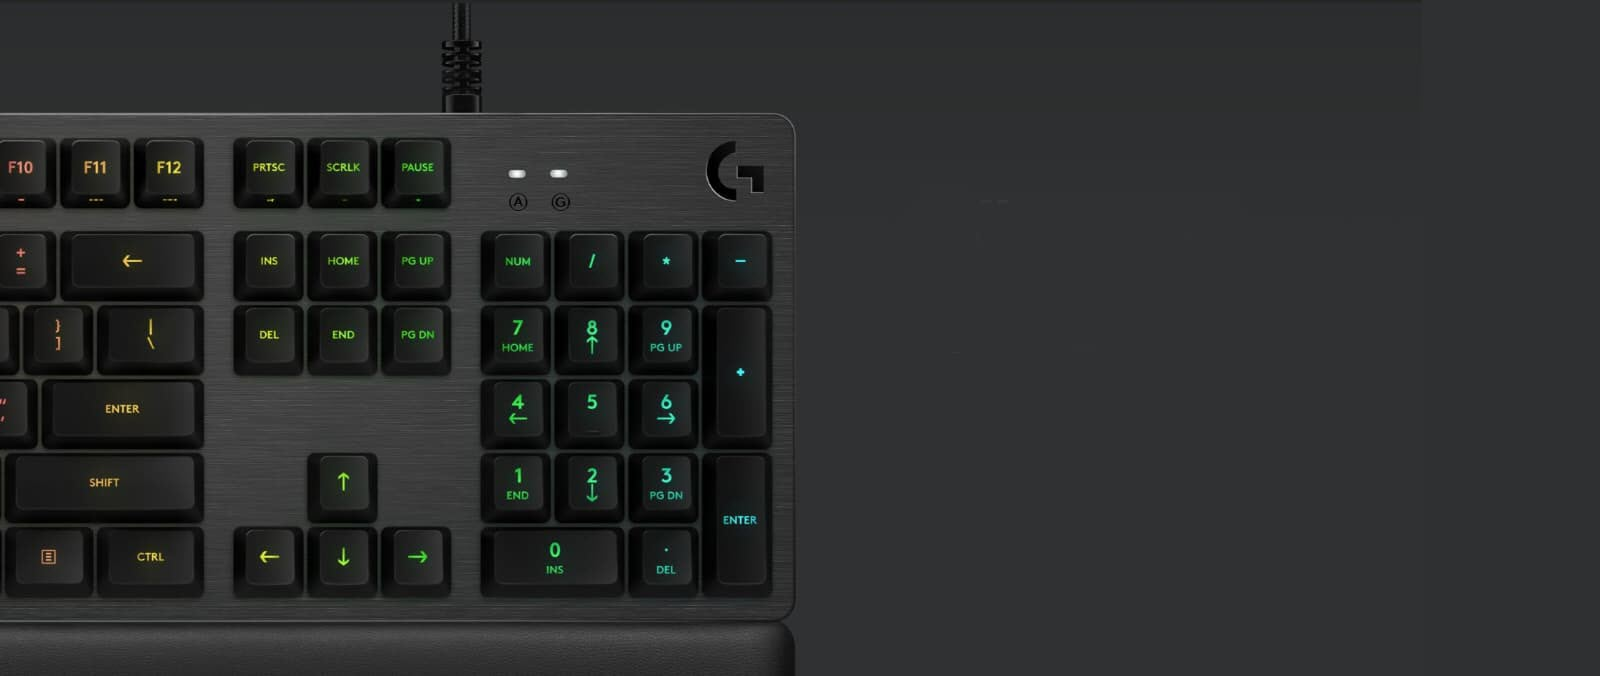 Logitech G513 RGB Backlit Mechanical Gaming Keyboard with GX Blue Clicky  Key Switches (Carbon) - Newegg com